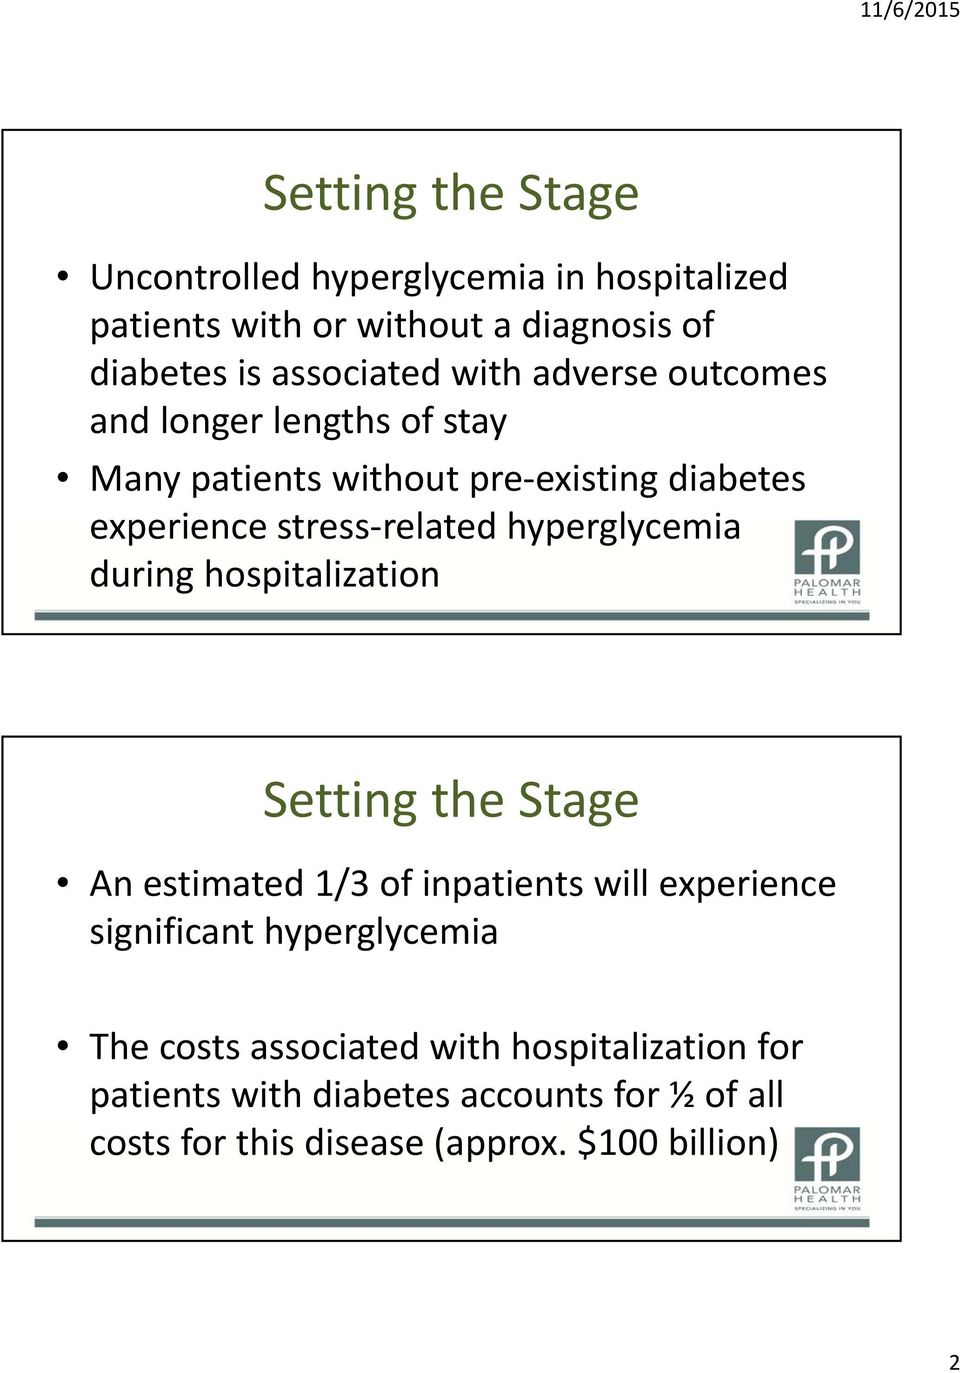 hyperglycemia during hospitalization Setting the Stage An estimated 1/3 of inpatients will experience significant hyperglycemia